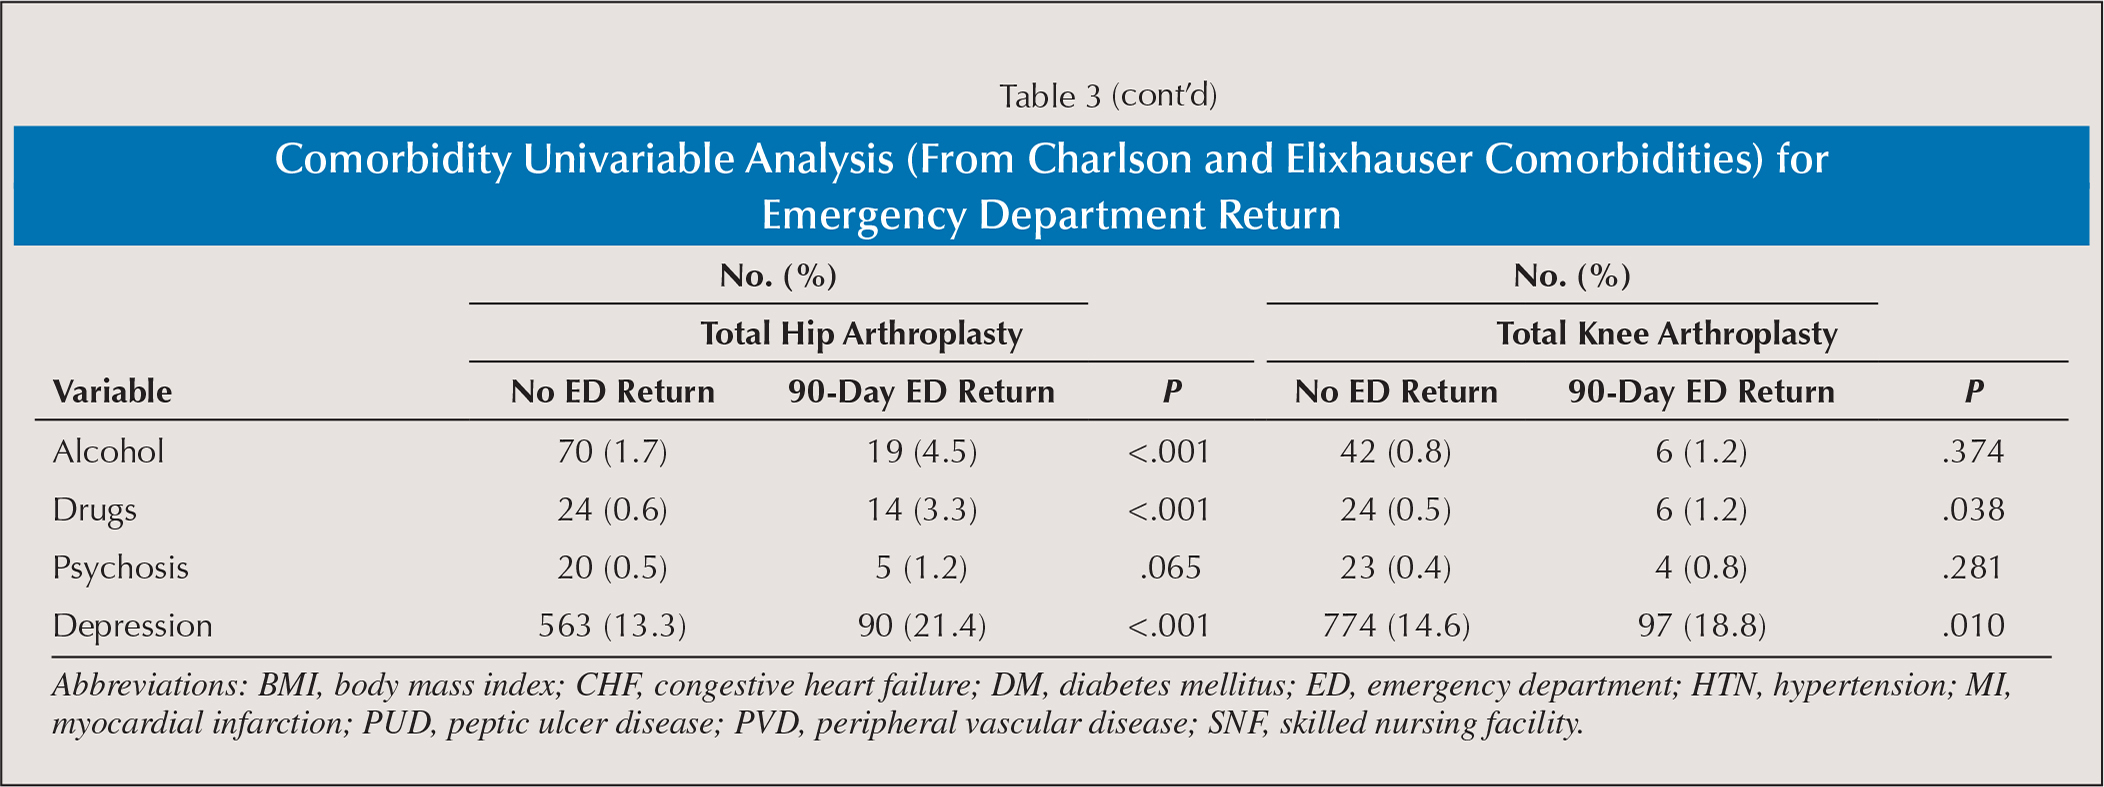 Comorbidity Univariable Analysis (From Charlson and Elixhauser Comorbidities) for Emergency Department Return